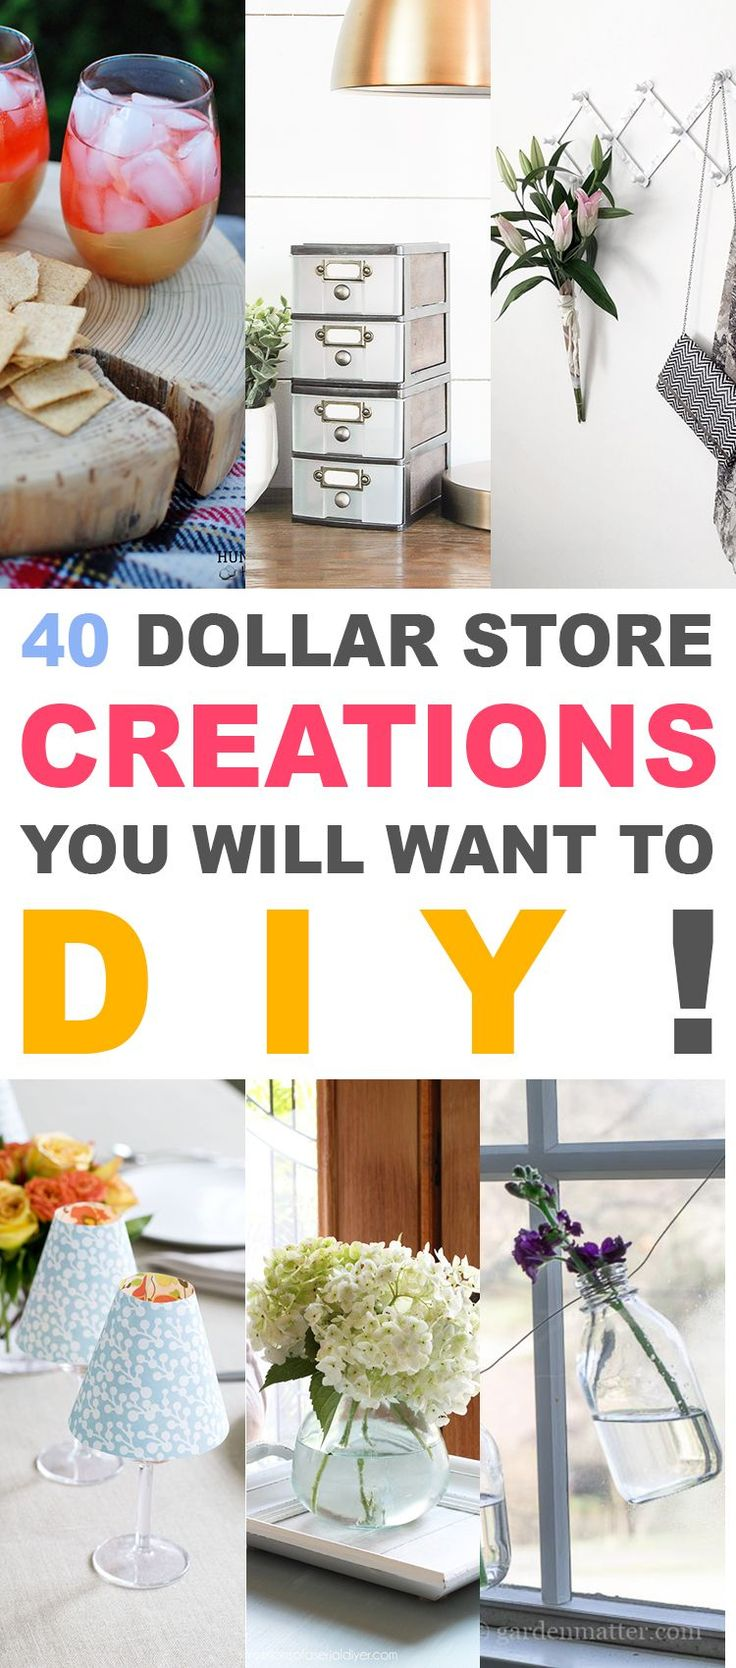 40 Dollar Store Creations You Will Want to DIY!  You are going to love these!- The Cottage Market